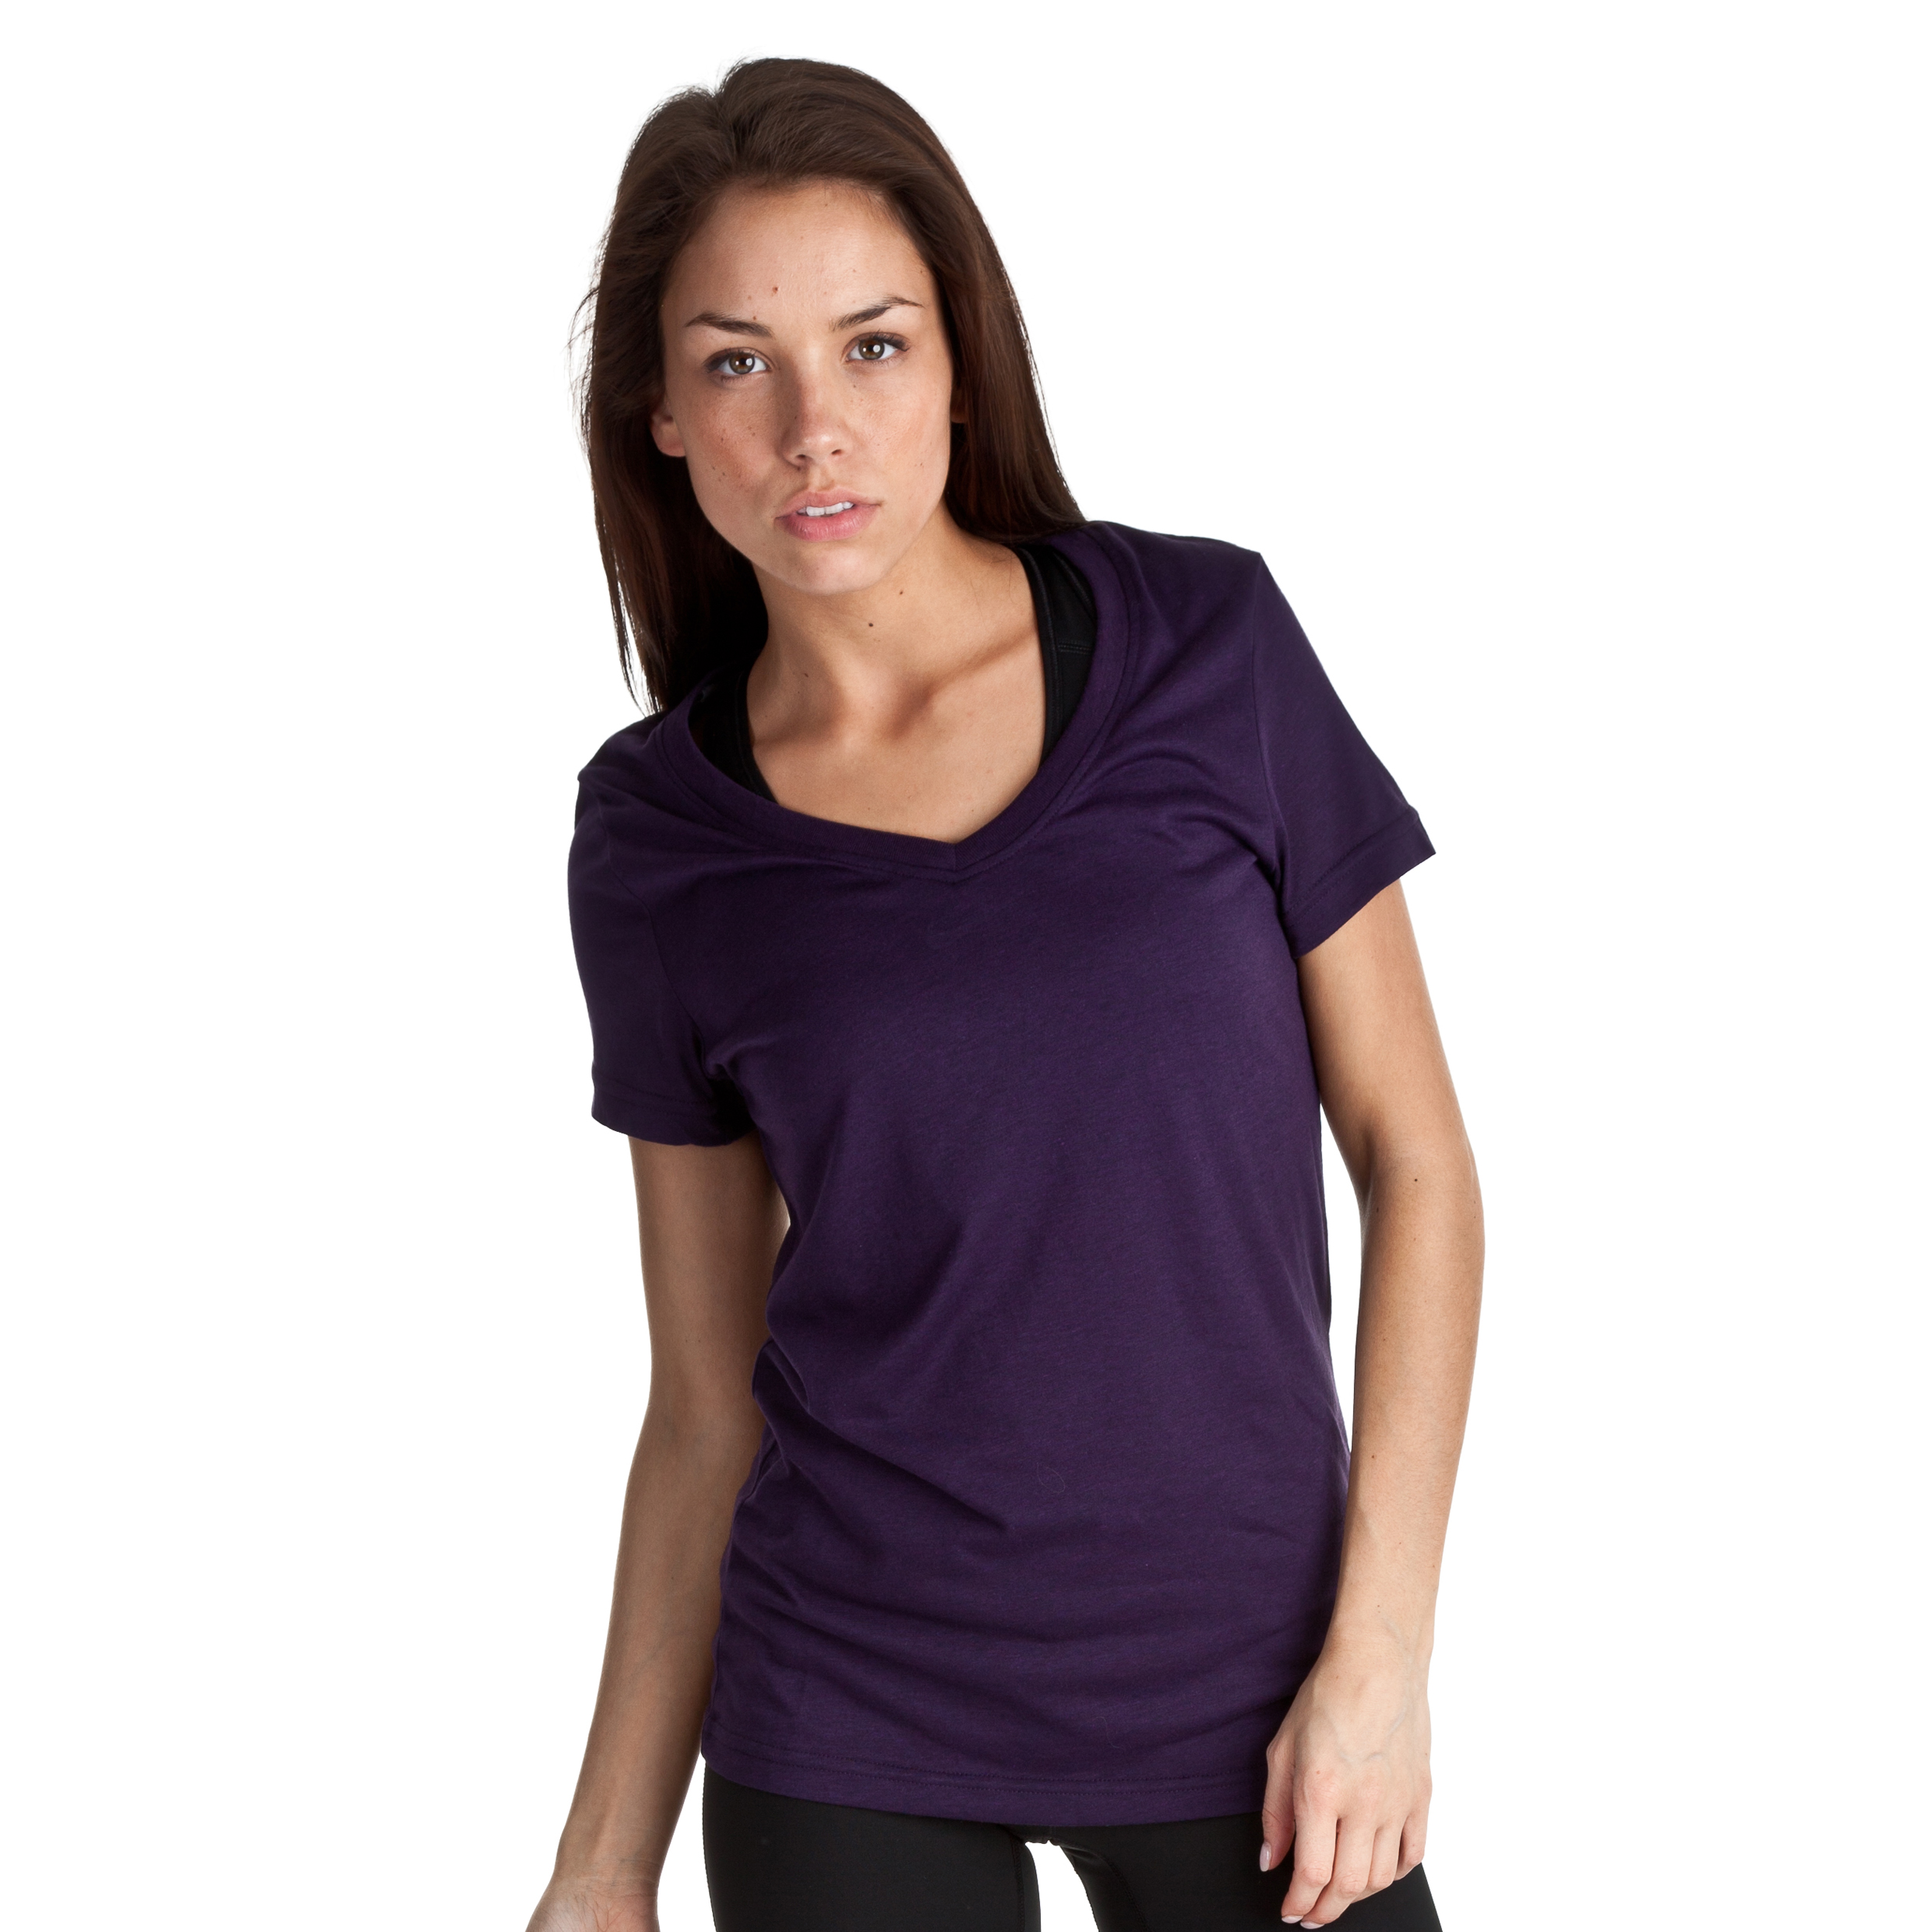 Nike Loose Dri-Blend Short Sleeve V-Neck Tee - Grand Purple/Atomic Purple - Womens